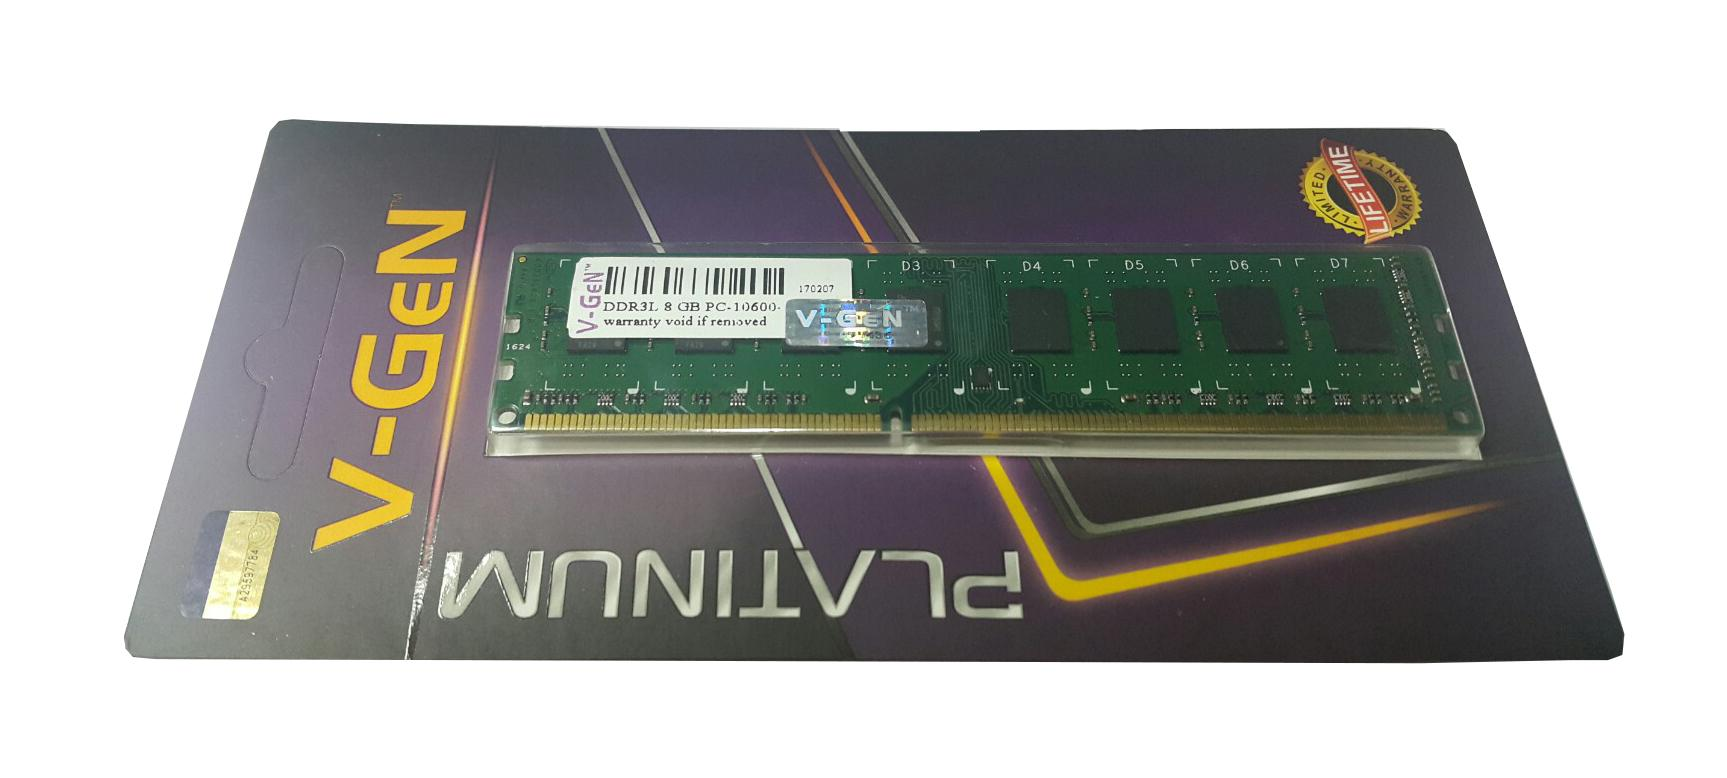 RAM DDR3 V-GeN 8GB PC10600/1333Mhz Long Dimm - Memory PC VGEN